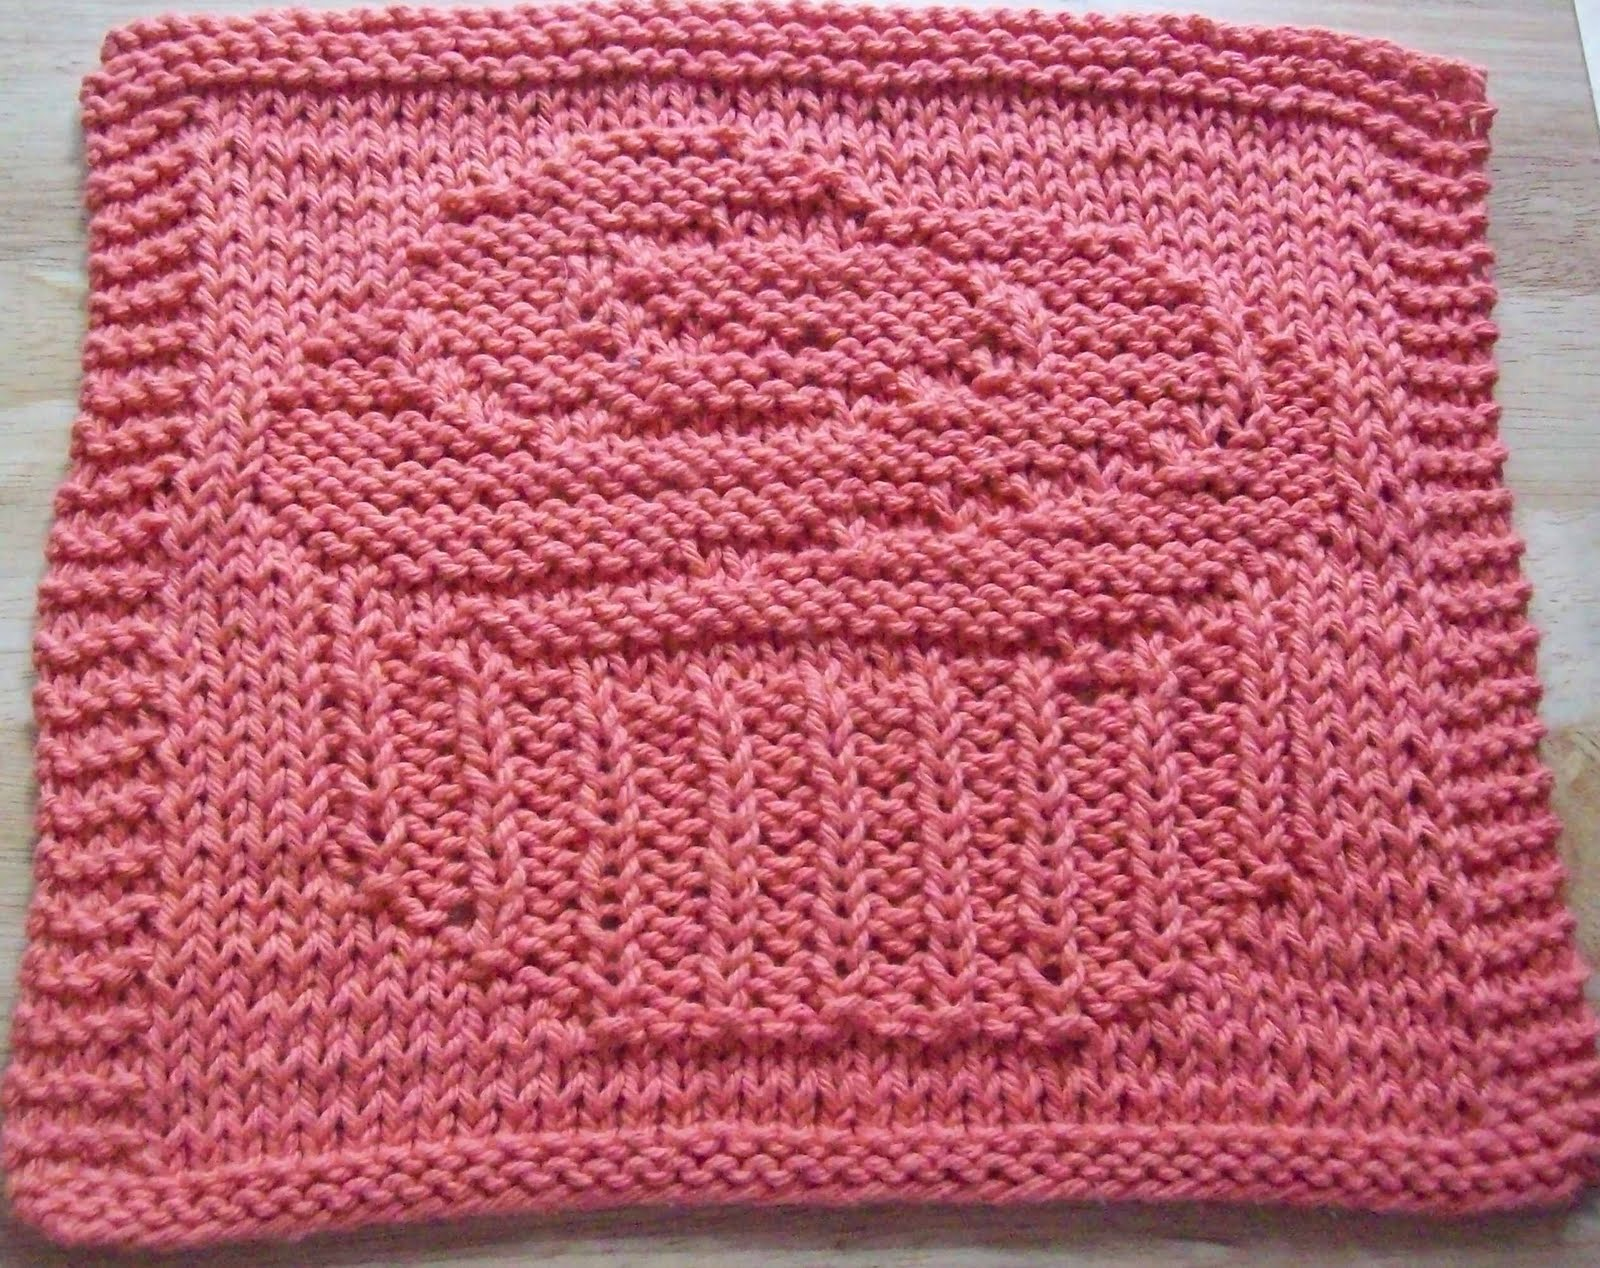 Knitted Dishcloths Pattern : DigKnitty Designs: Frosted Cupcake Knit Dishcloth Pattern